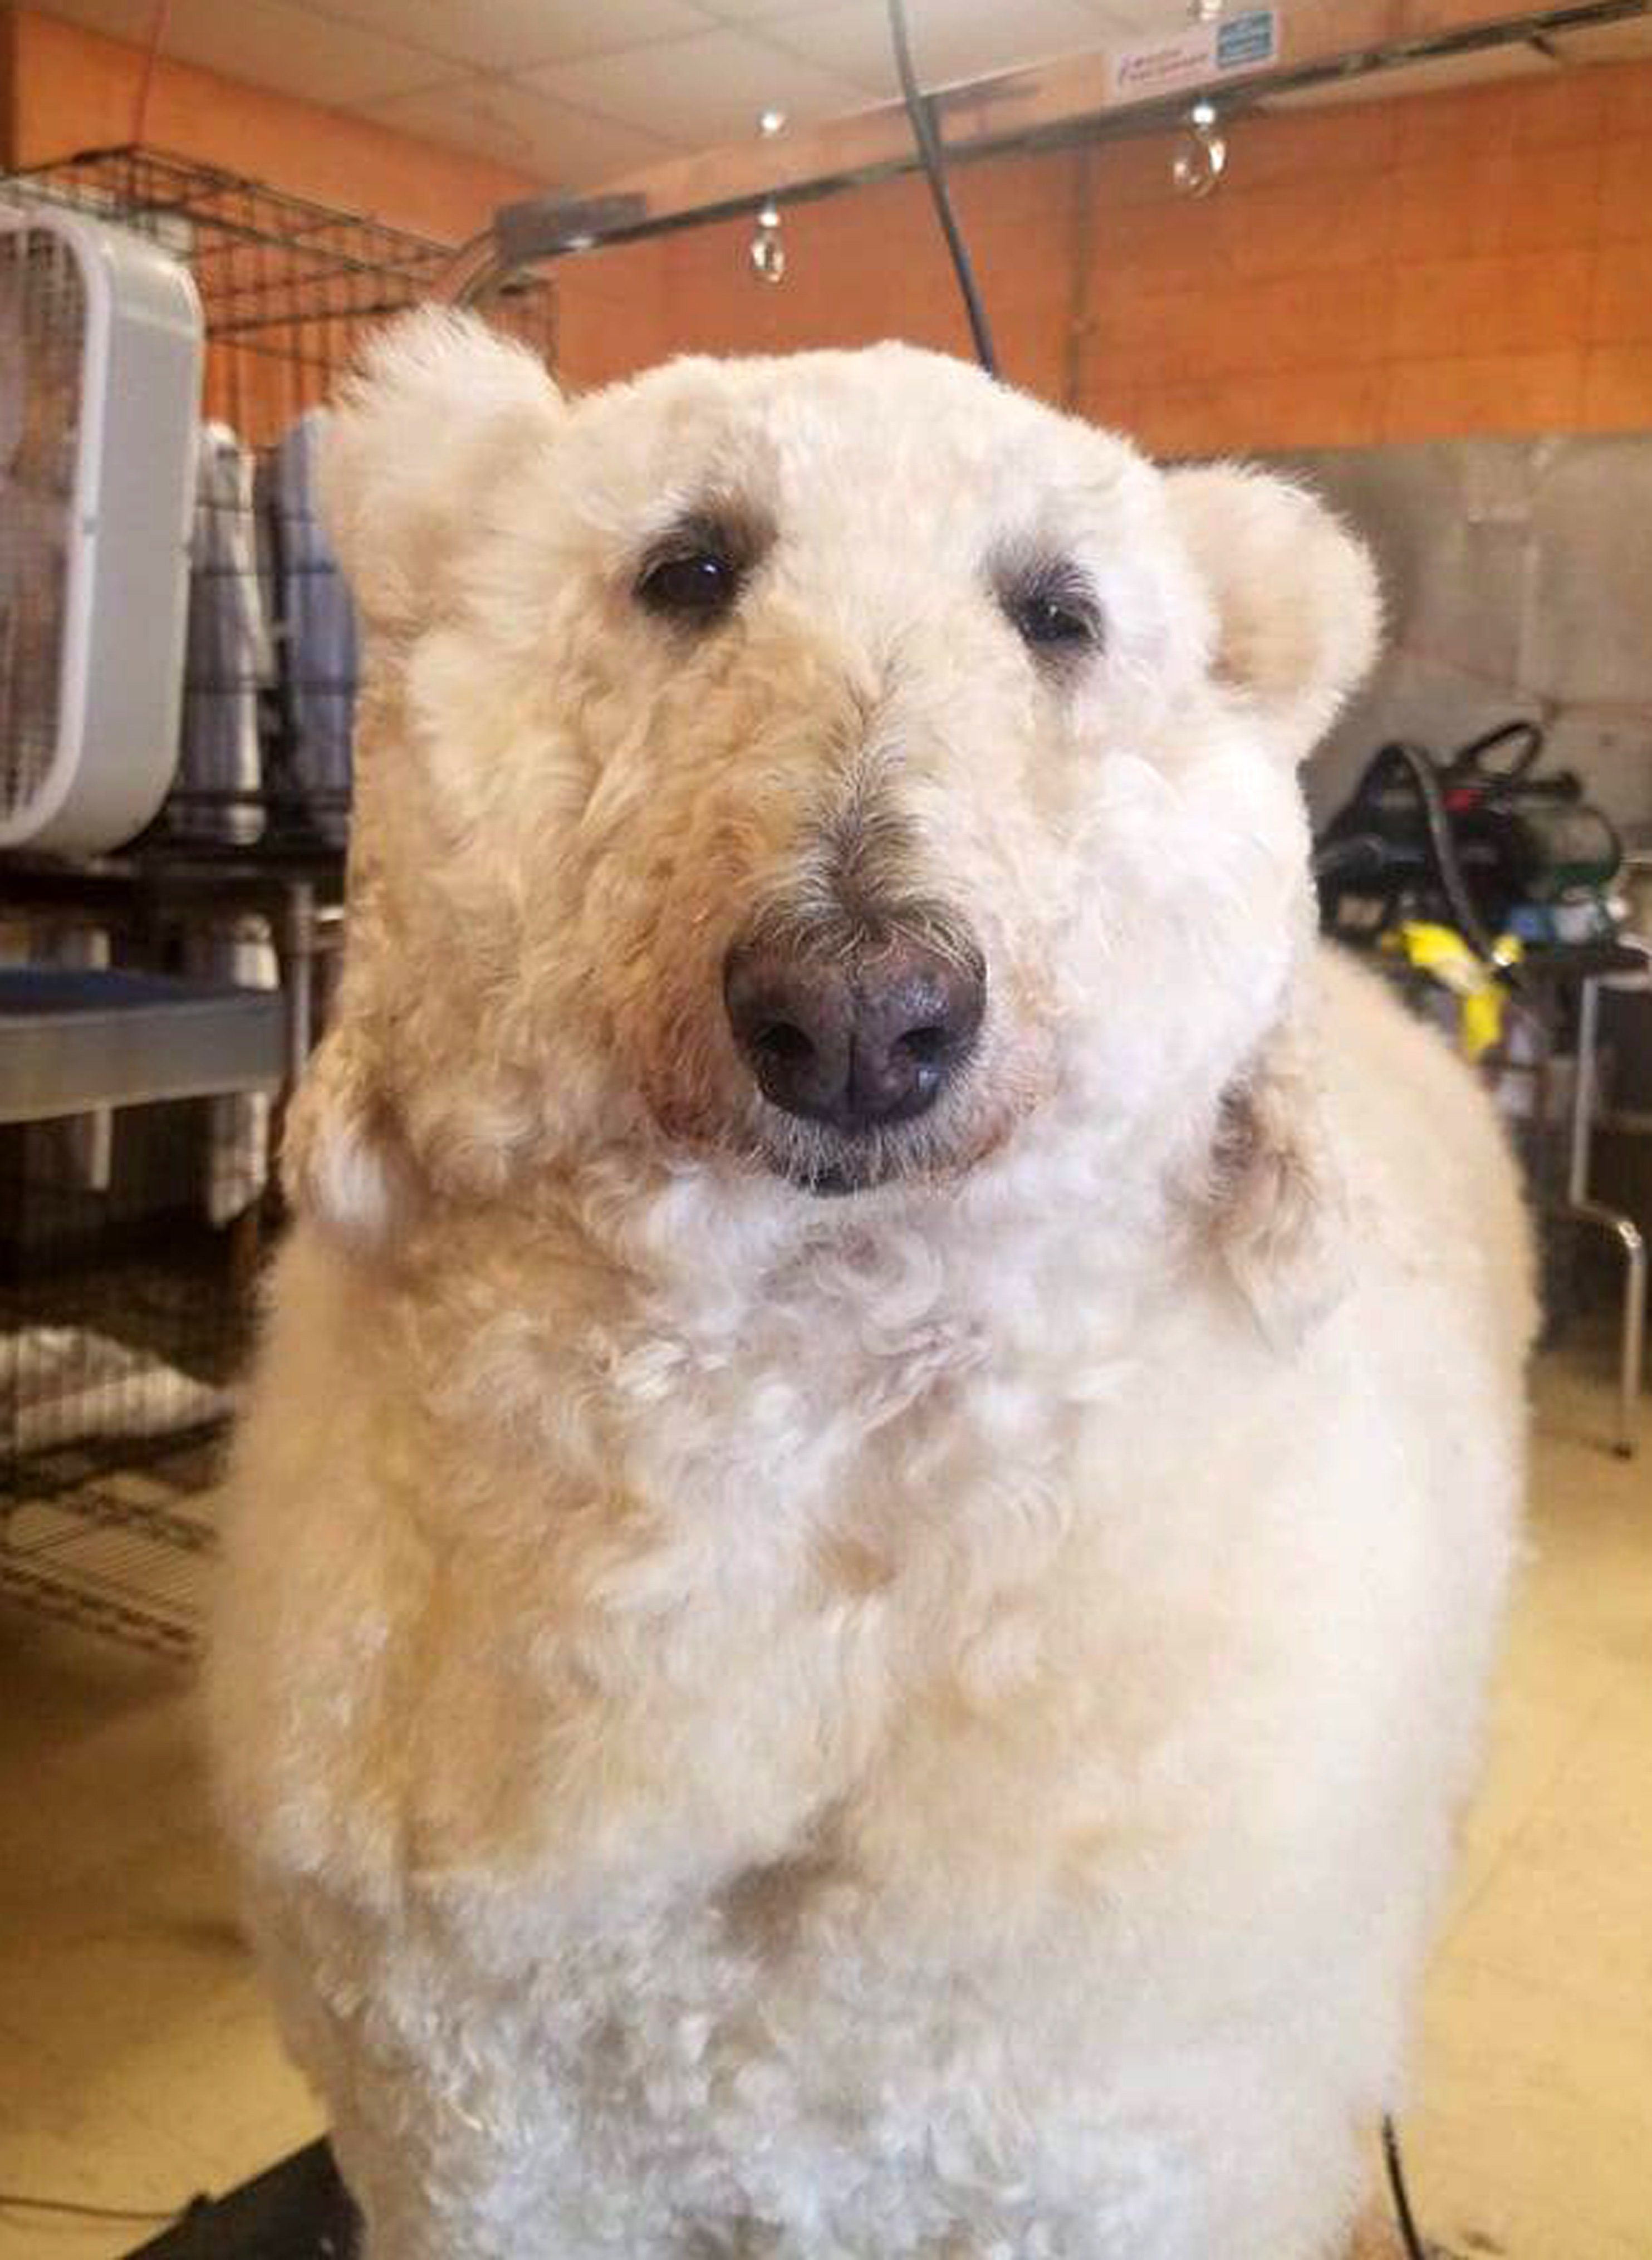 Bijou as a polar bear. | Source: Caters